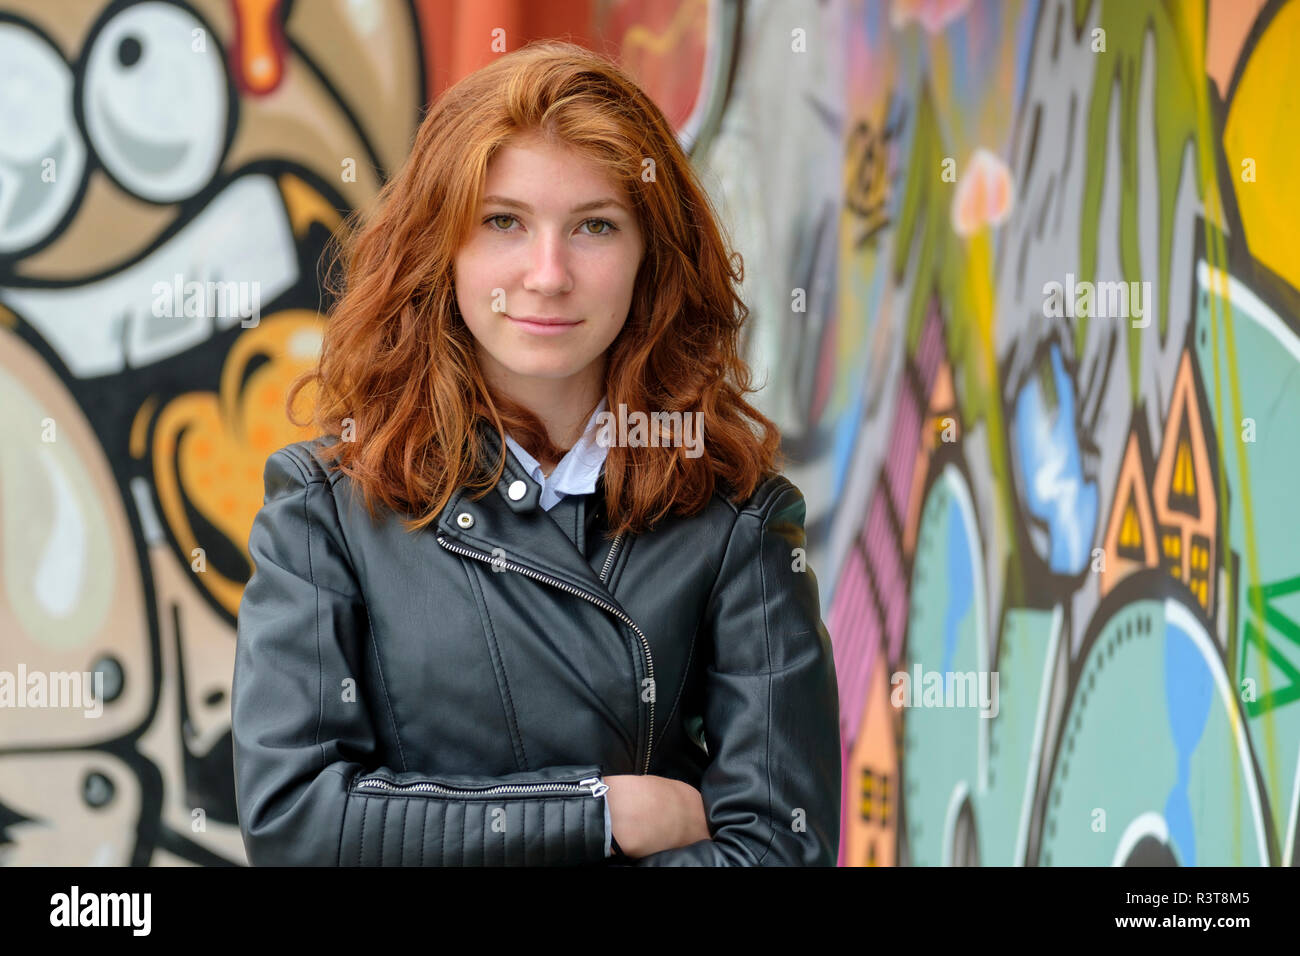 Italy, Finale Ligure, portrait of redheaded teenage girl wearing black leather jacket in front of mural - Stock Image